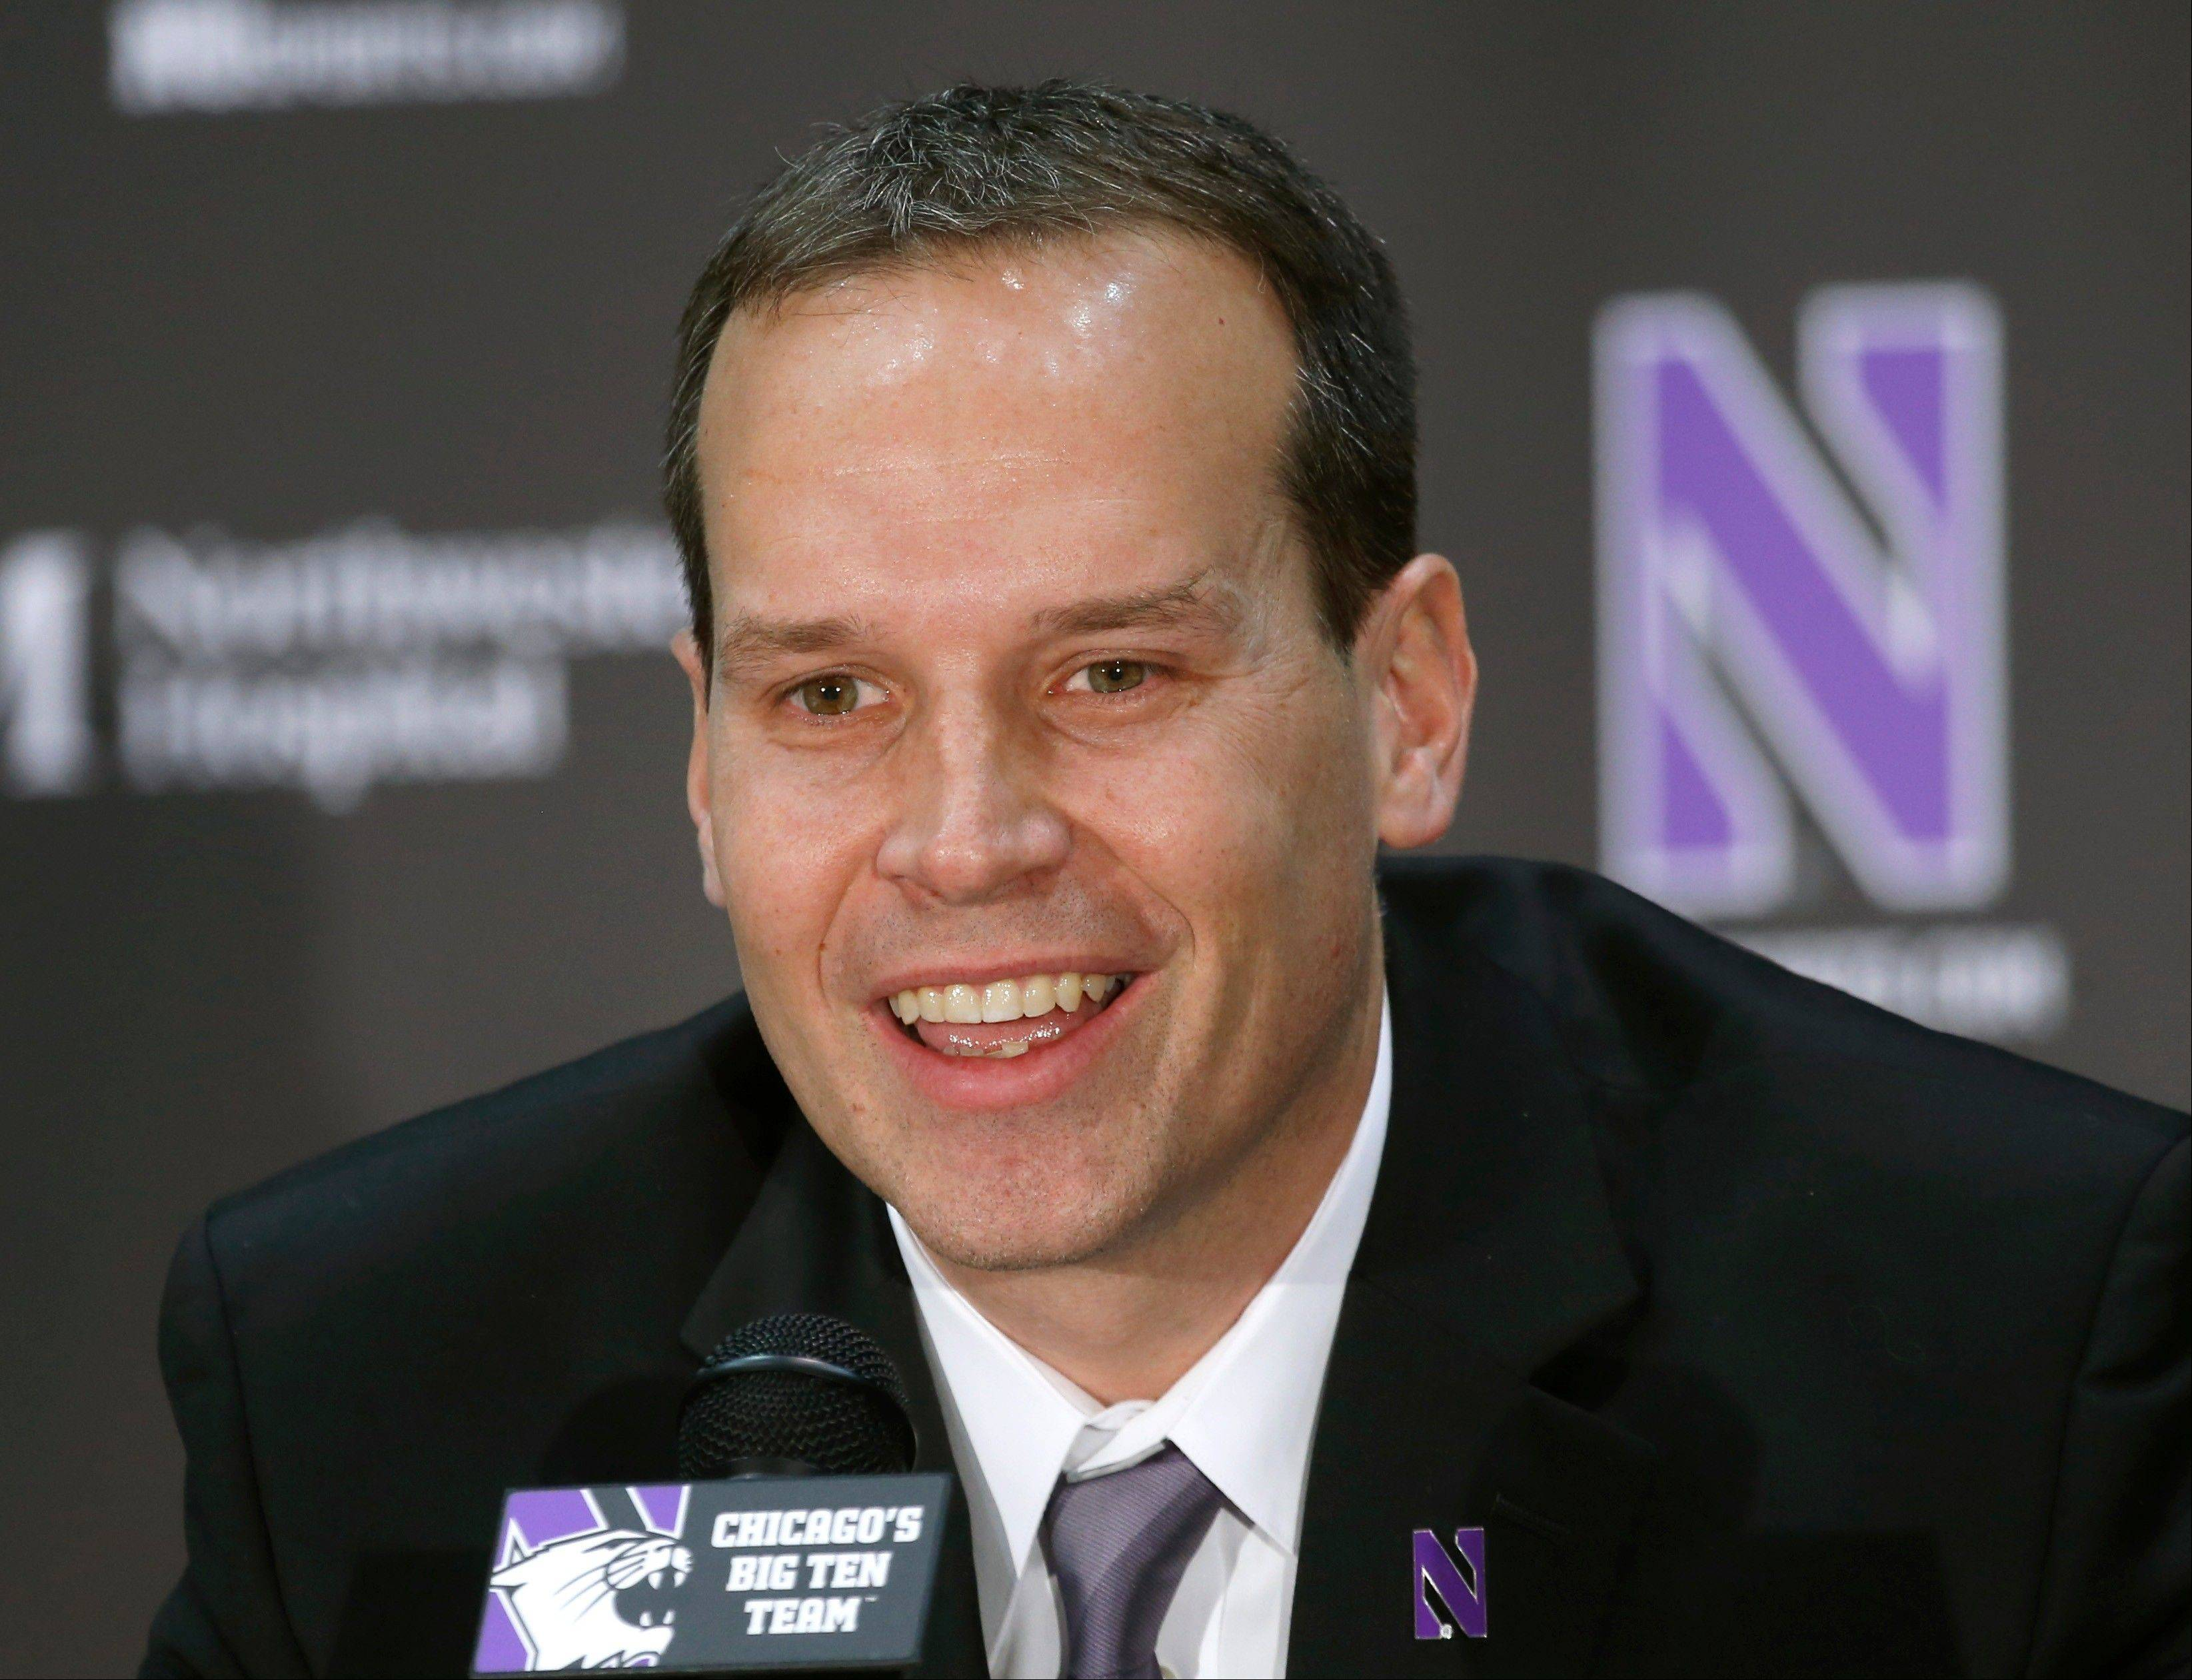 Chris Collins, Northwestern's new basketball coach, responds to a question at Tuesday morning's news conference.